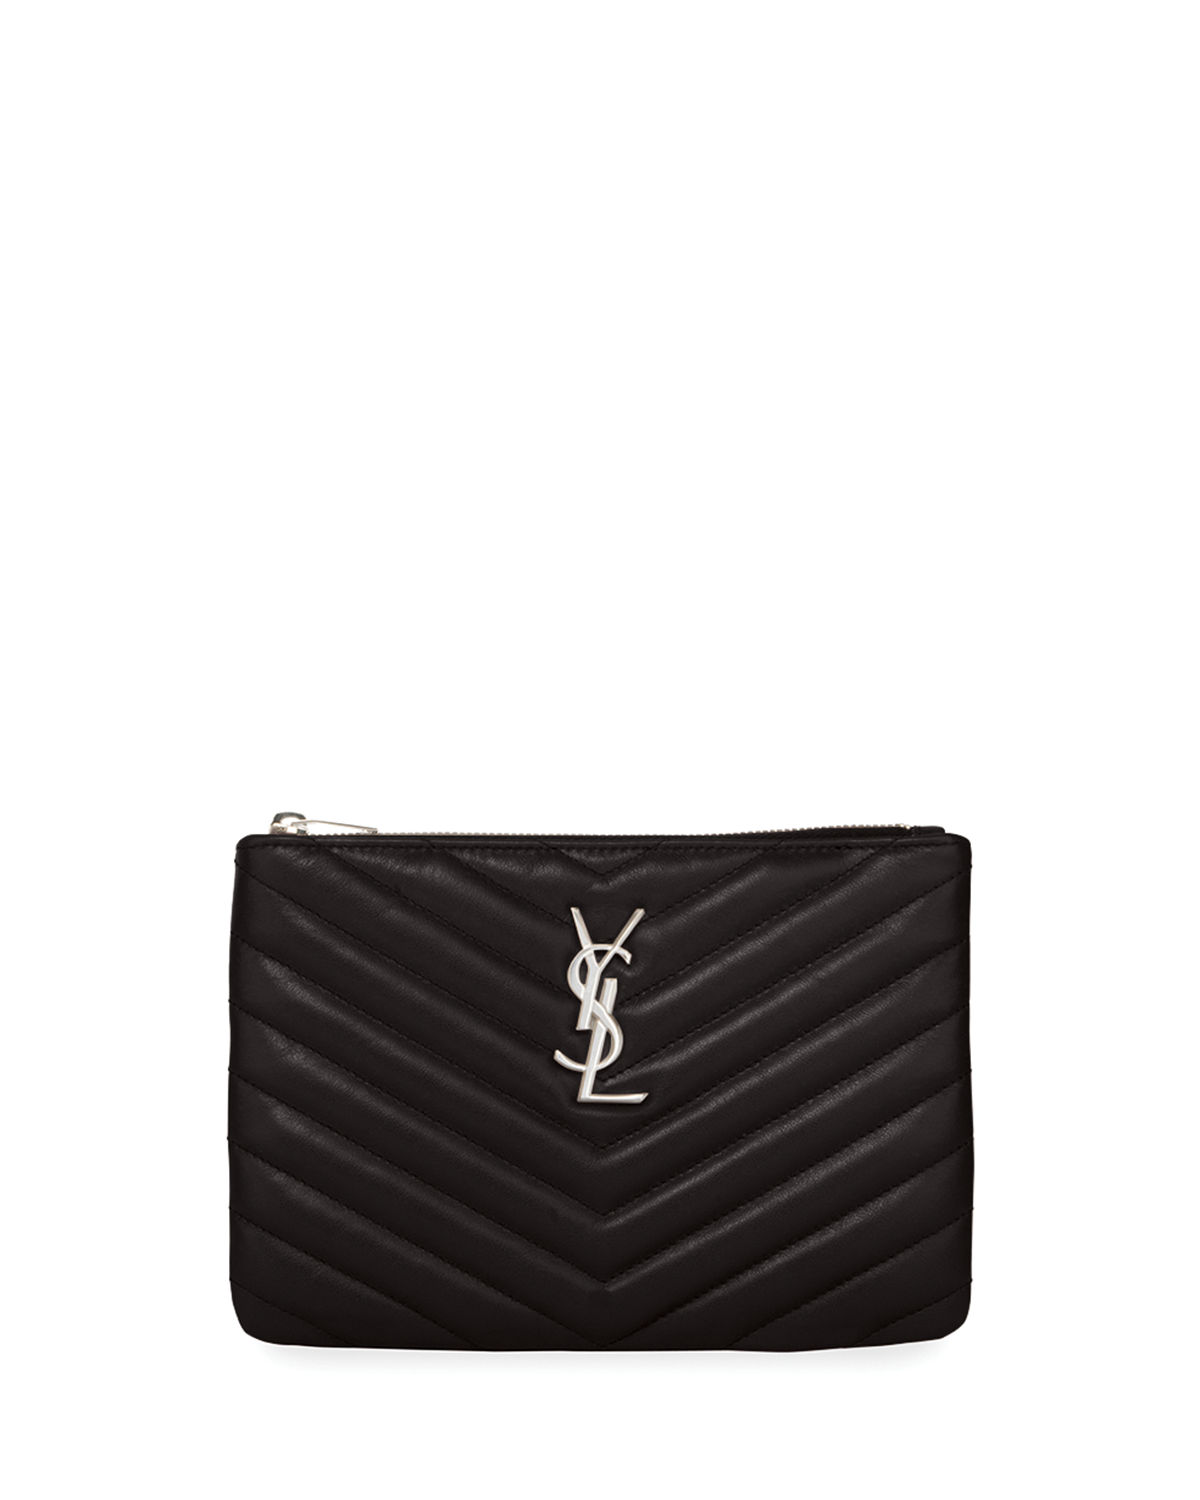 ec68c579a3aa Saint LaurentMonogram YSL Small Chevron Quilted Zip-Top Pouch Bag - Silver  Hardware